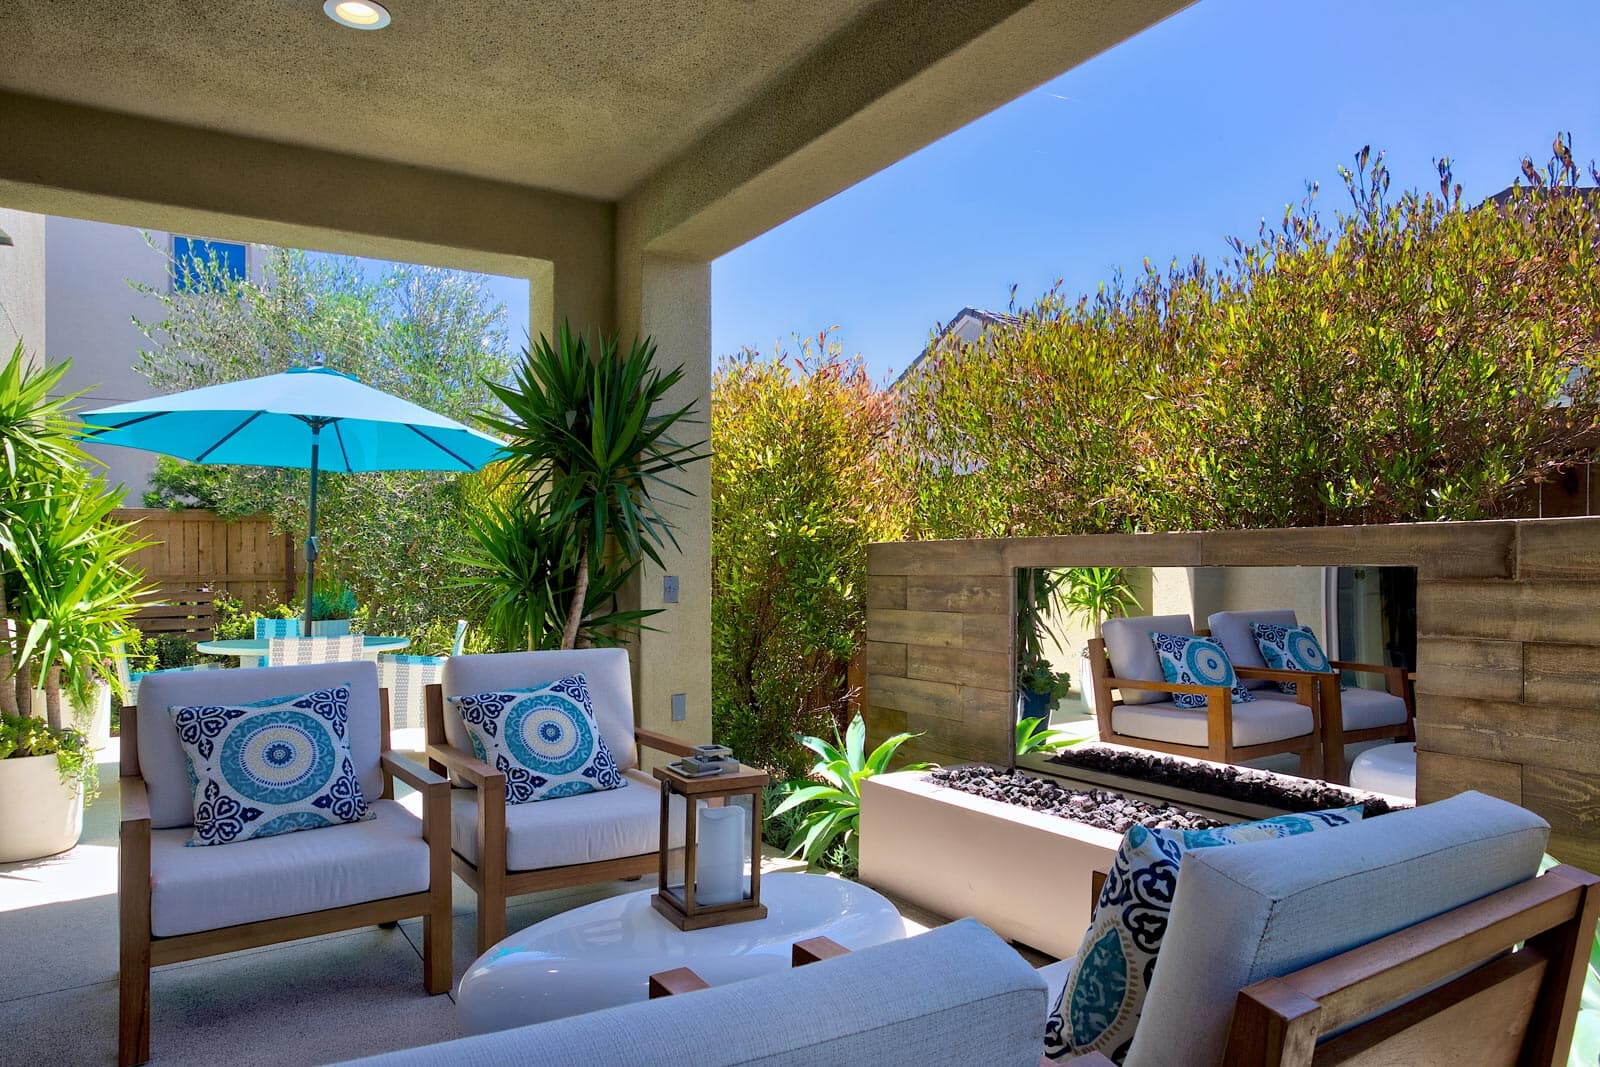 Residence 1 Back Yard | Prado at the Village of Escaya in Chula Vista, CA | Brookfield Residential